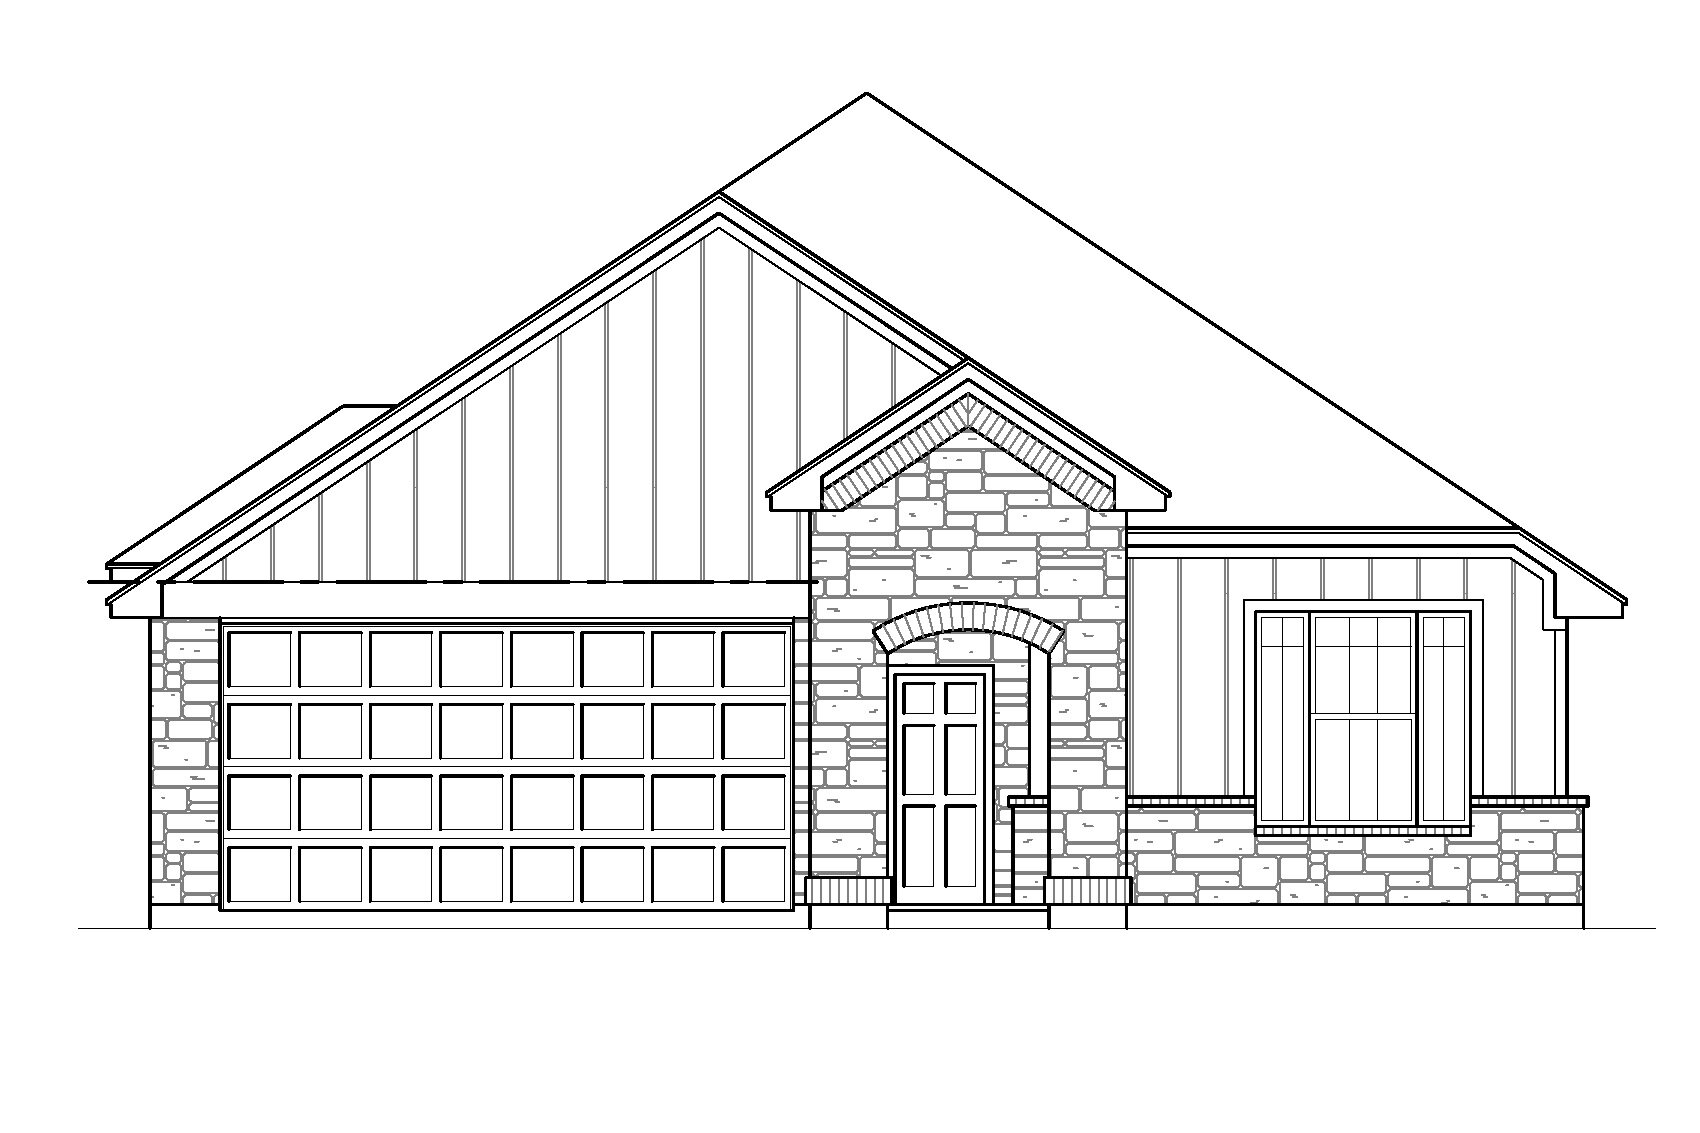 Alamo - 1574 Square Feet3 Bedrooms | 2 BathroomsStarting at $222,990